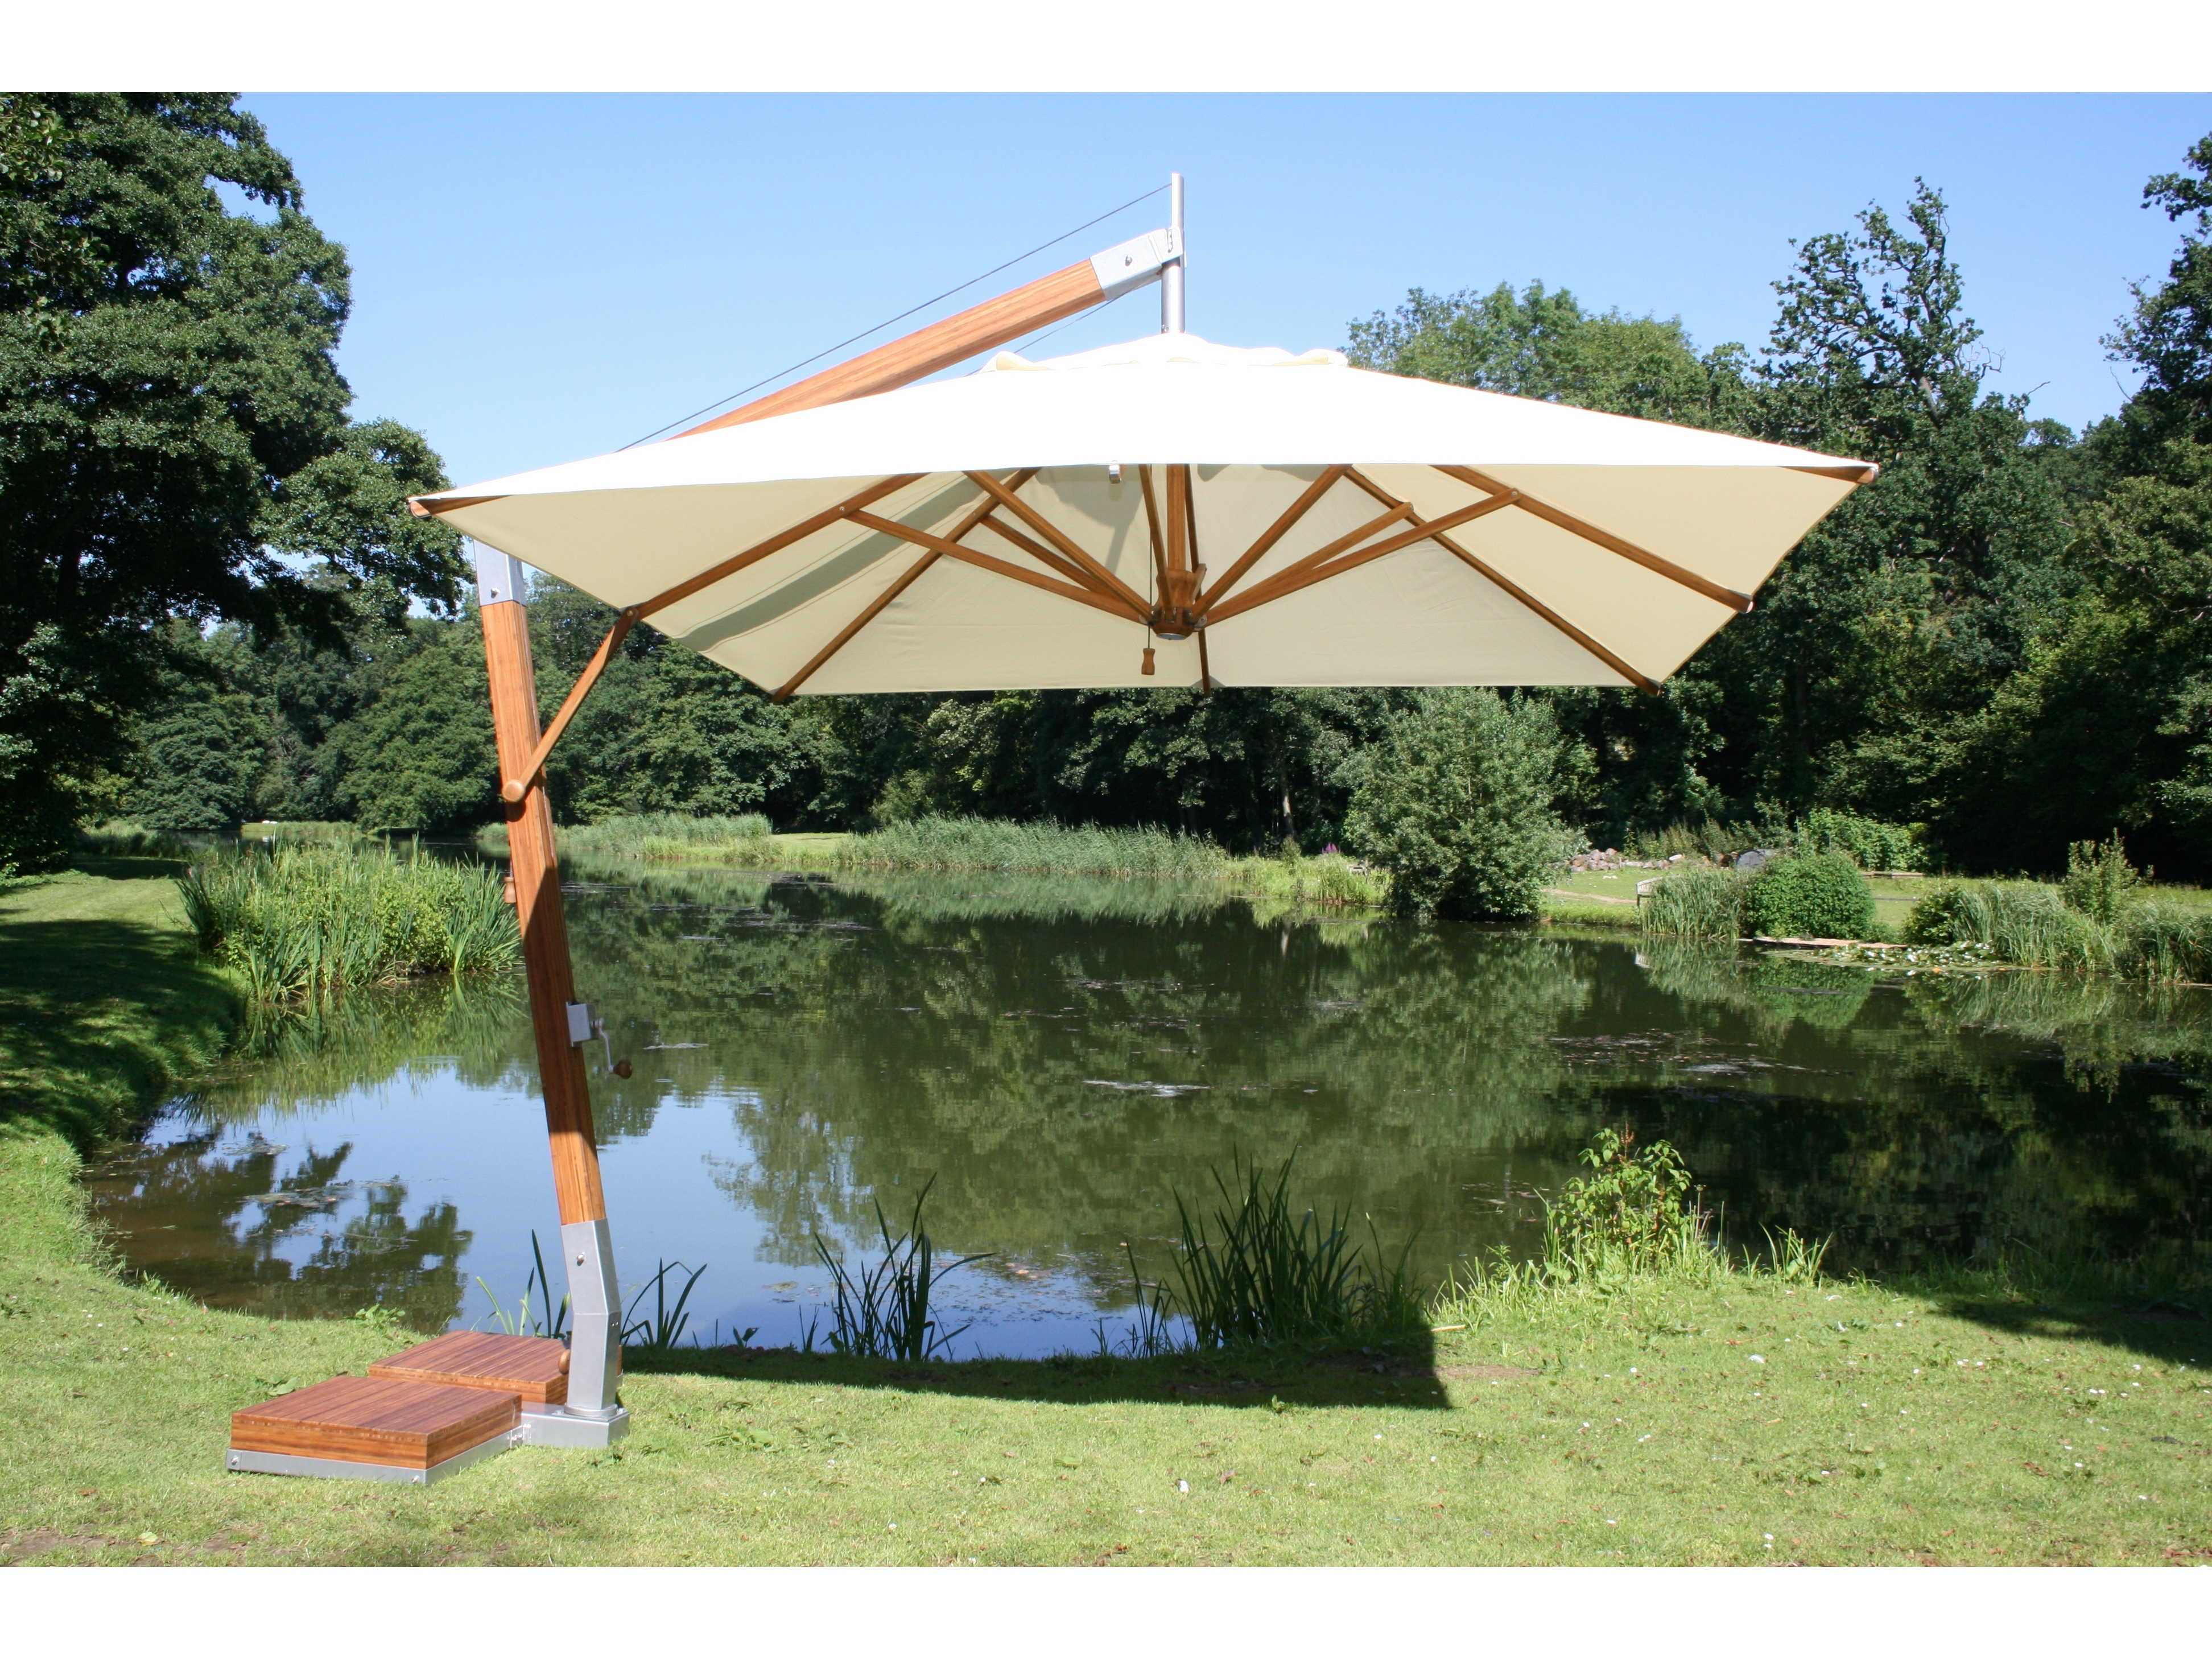 Offset Rectangular Patio Umbrellas For Famous Rectangular White Fabric Offset Patio Umbrella With Wood And Metal (View 9 of 20)